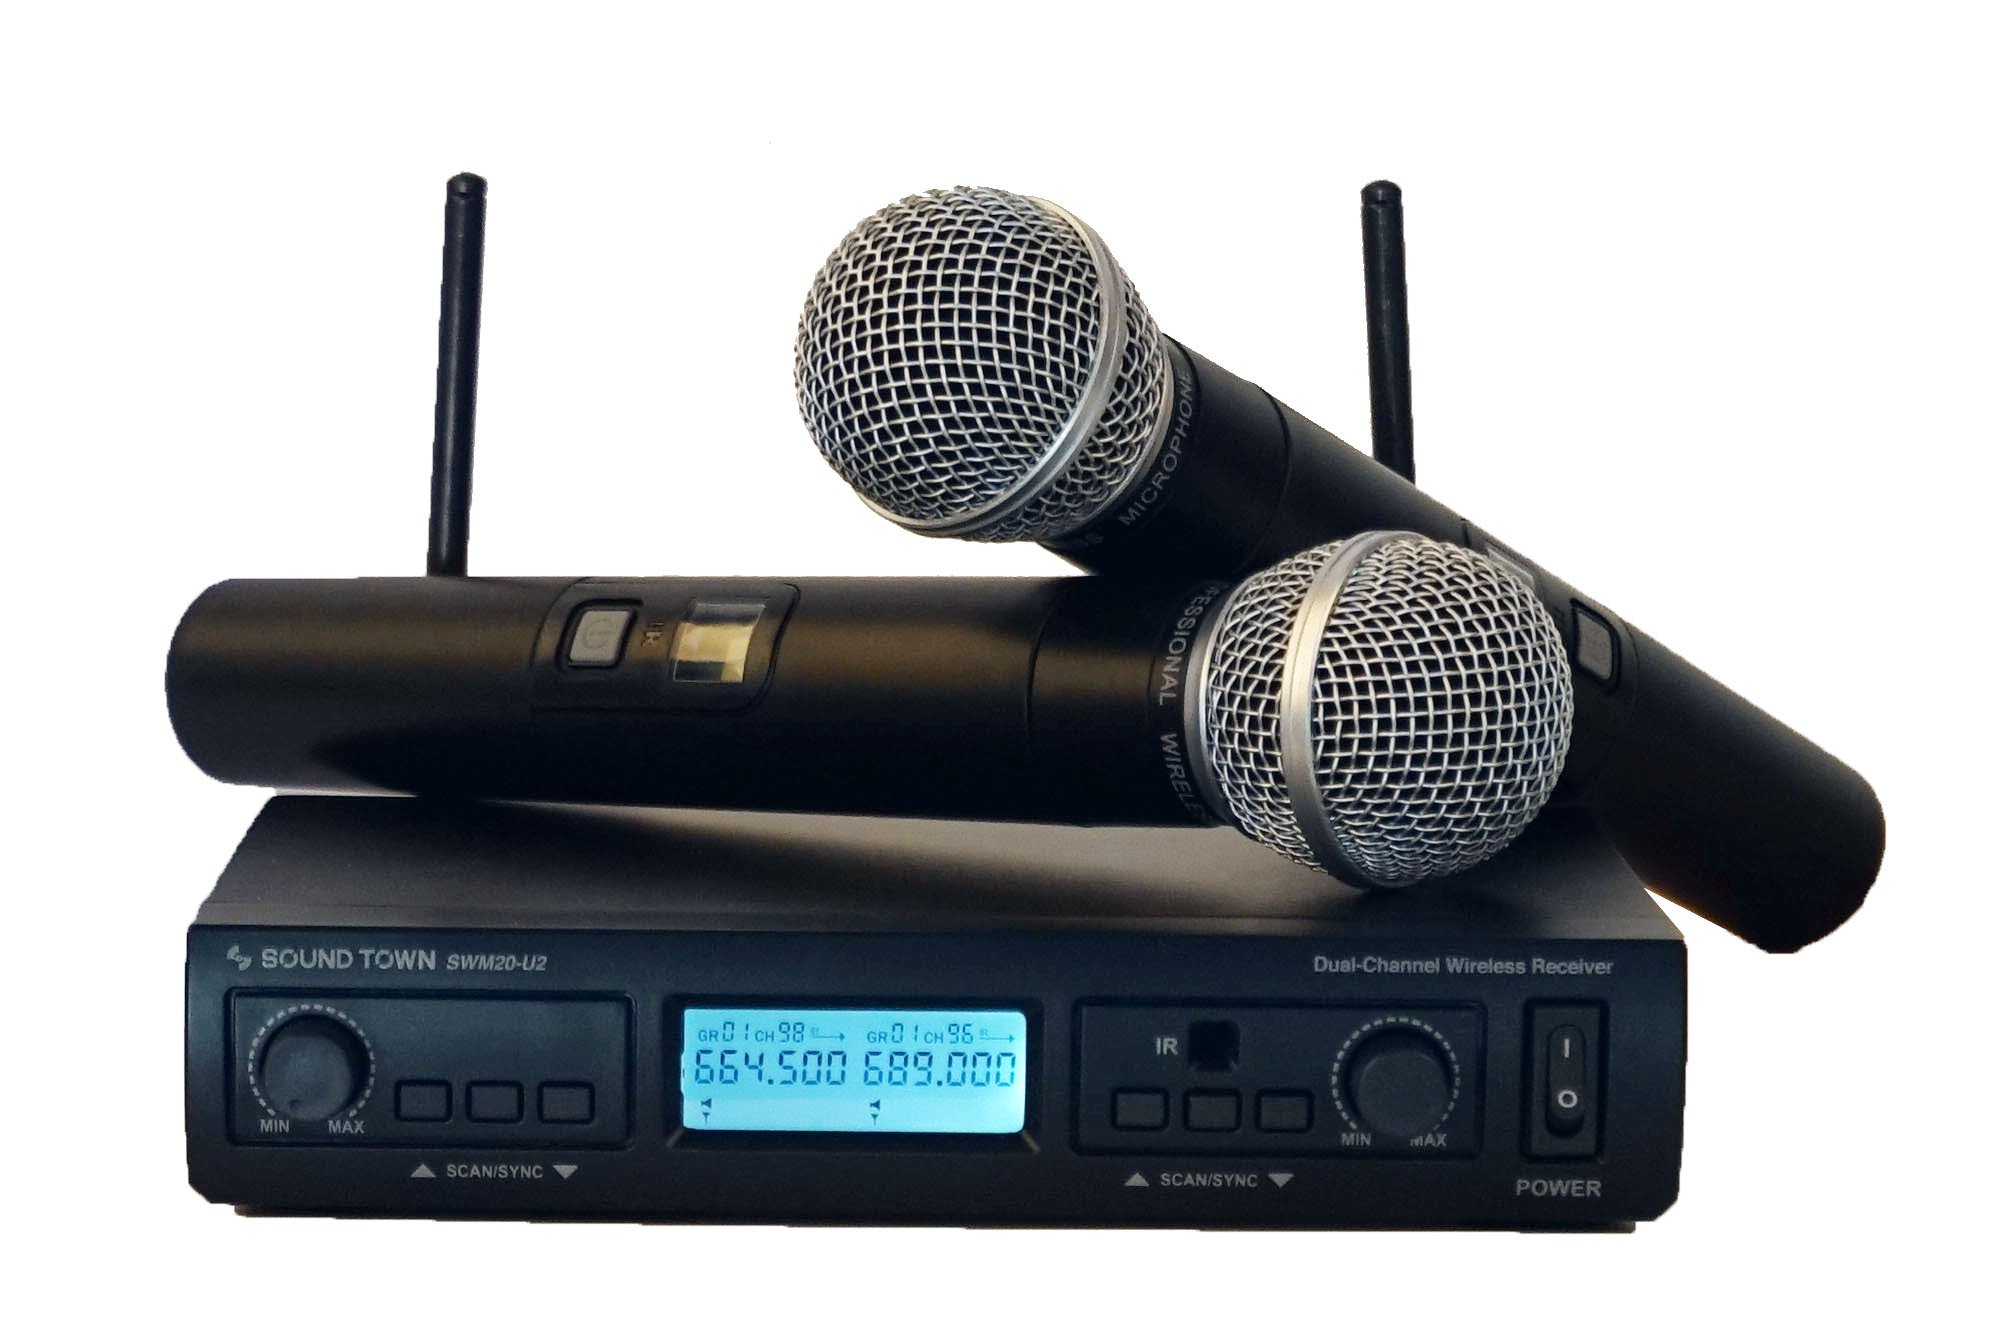 Sound Town Professional Dual-Channel UHF Handheld Wireless Microphone System with Selectable Frequencies,2 Handheld Mics (SWM20-U2HH) by Sound Town